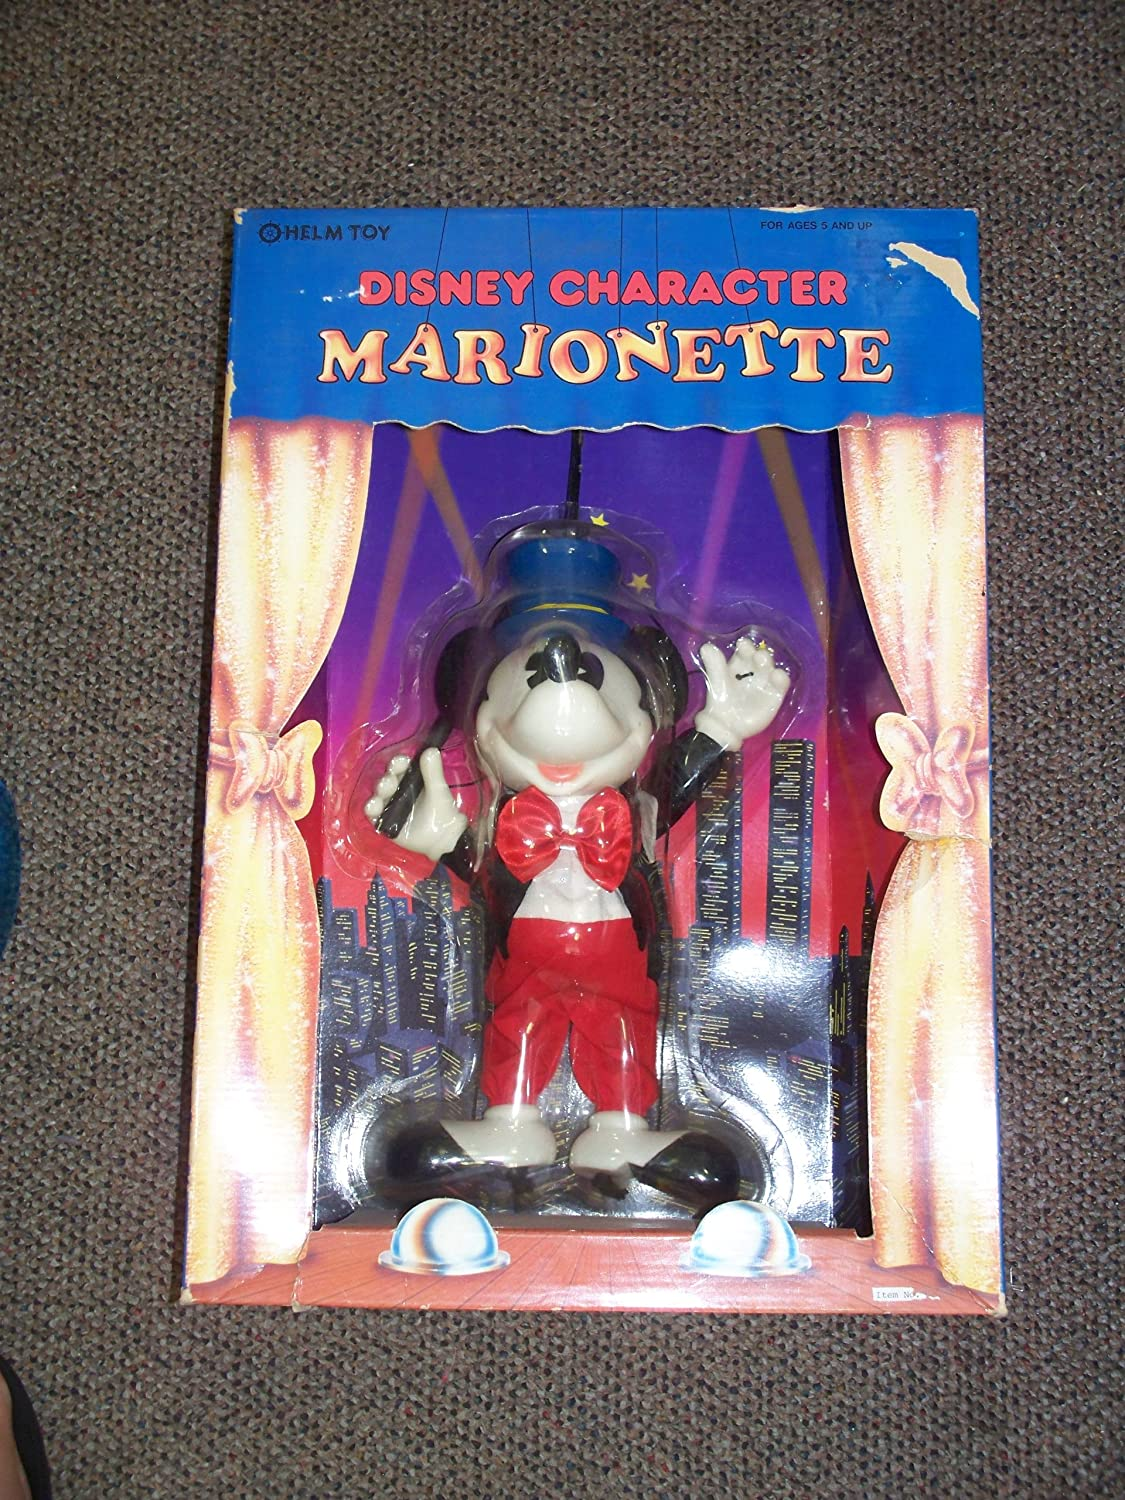 """B00F3JJRJS Disney Charactor Marionette By Helm Toy 10"""" Mickey Mouse A1TgJhgKL1L.SL1500_"""